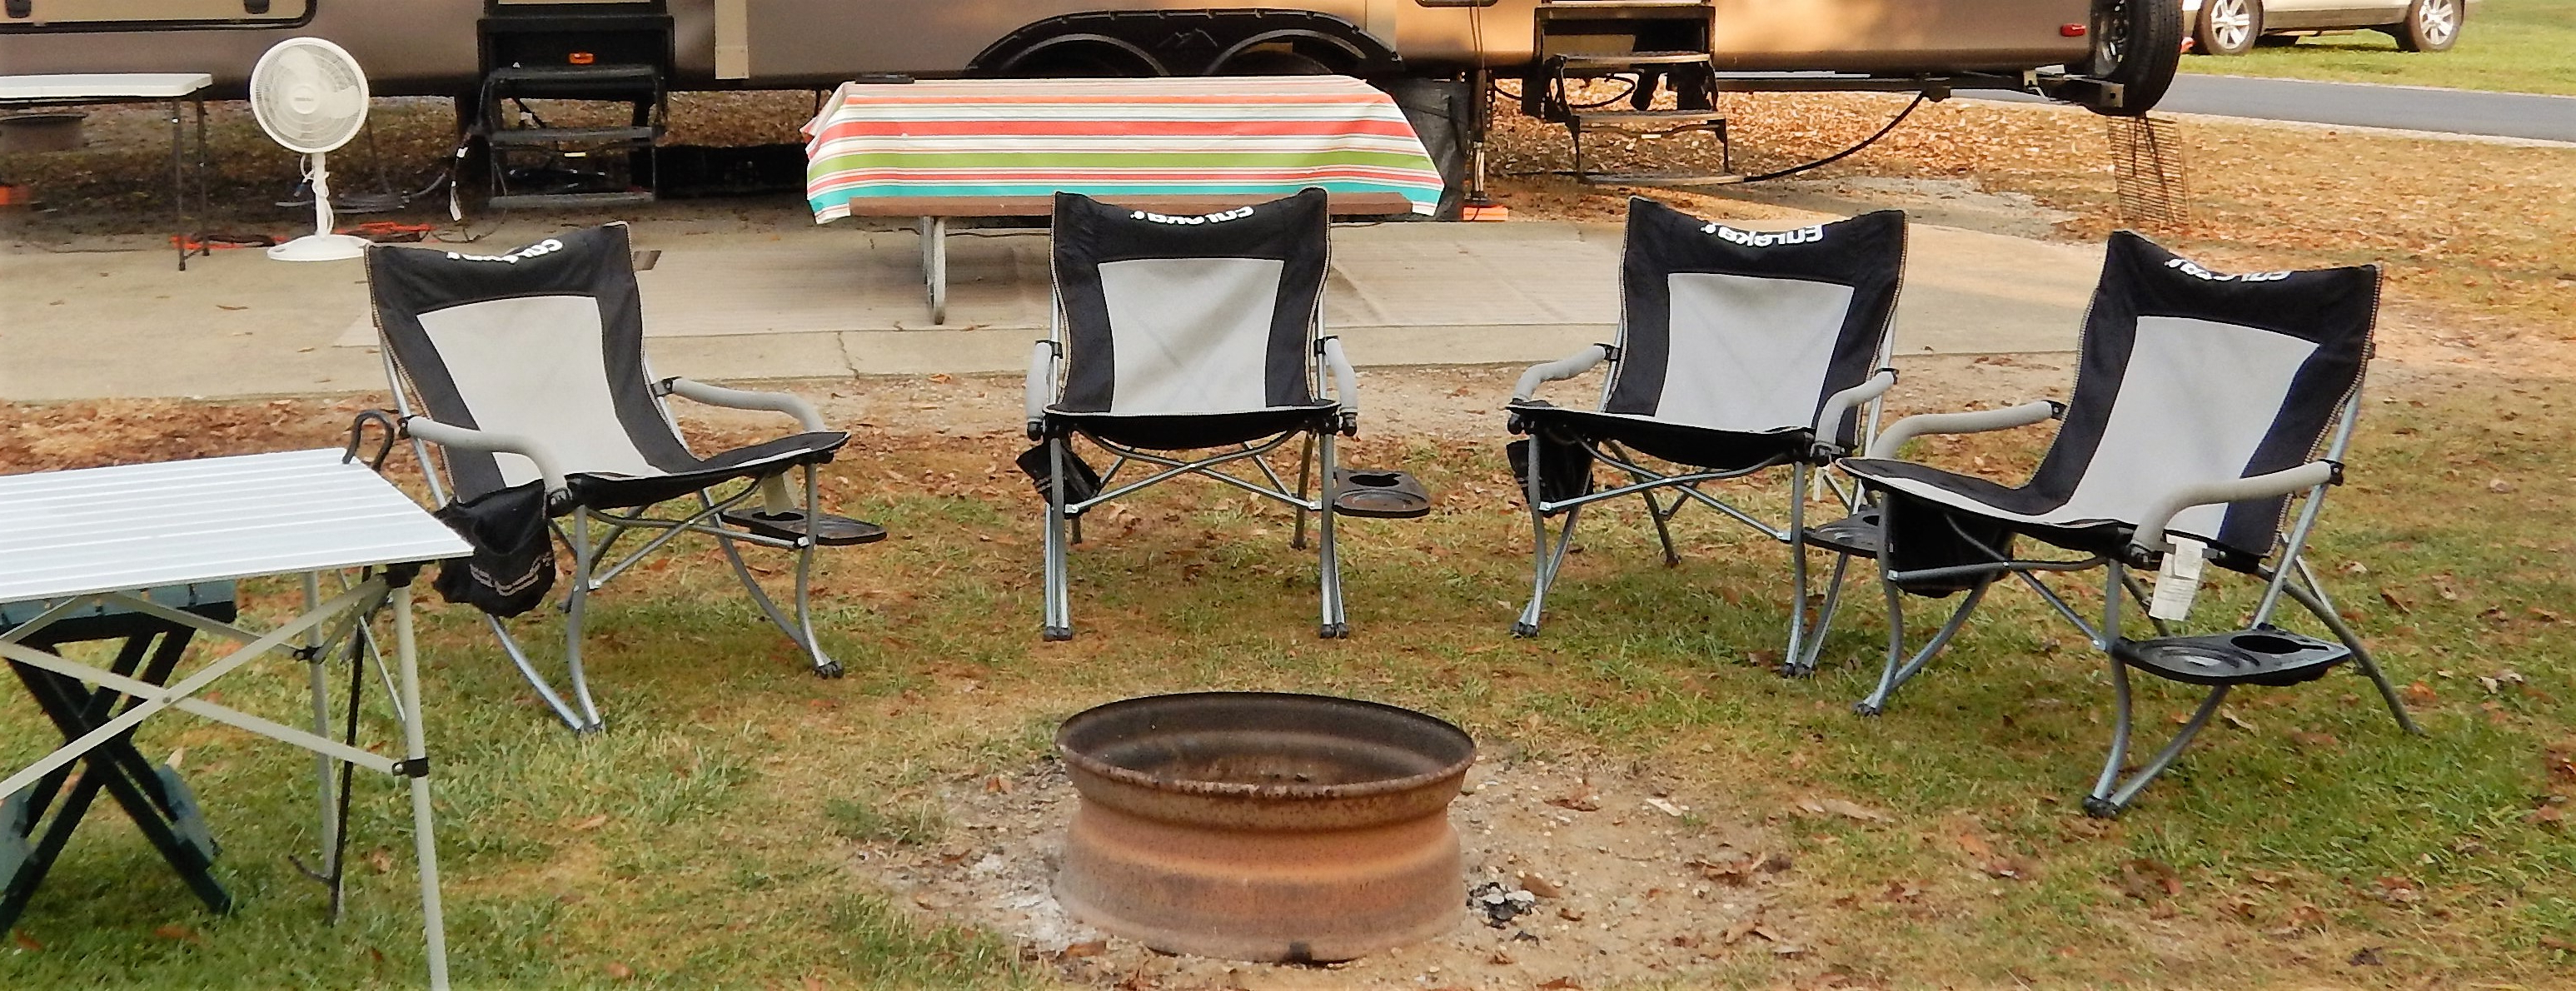 Latest Best Camping Chair For A Heavy Person (5 Heavy Duty Options) Intended For Mesh Fabric With Steel Frame Chairs With Canopy And Tray (Gallery 23 of 25)